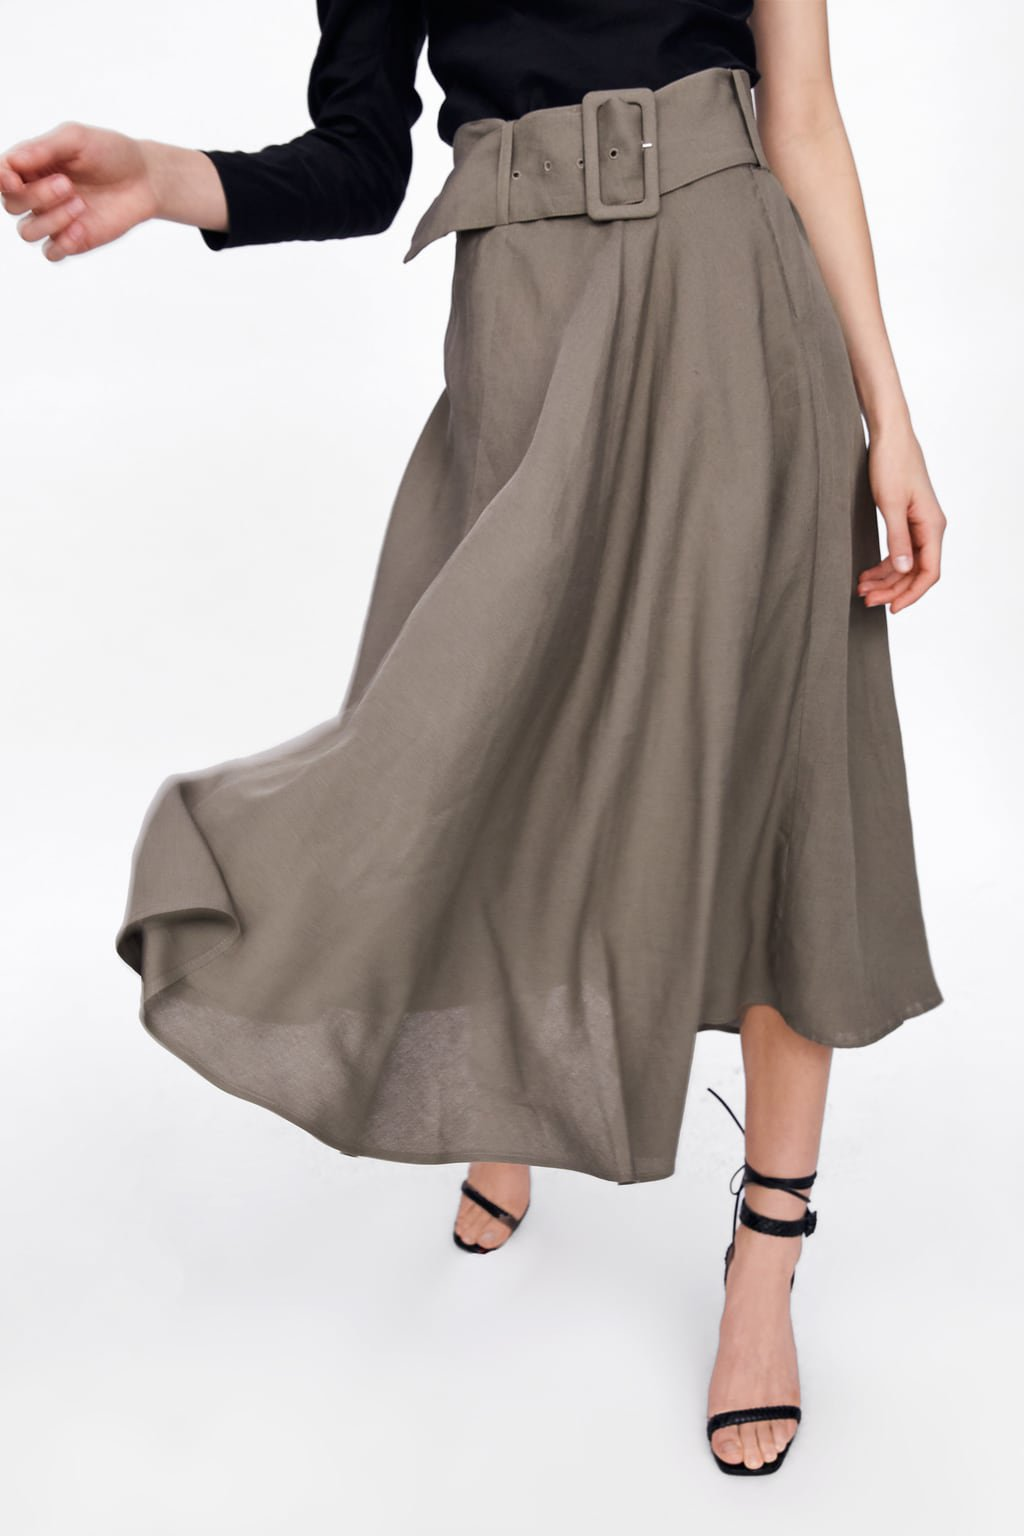 BELTED SKIRT - View All-SKIRTS-WOMAN | ZARA United States